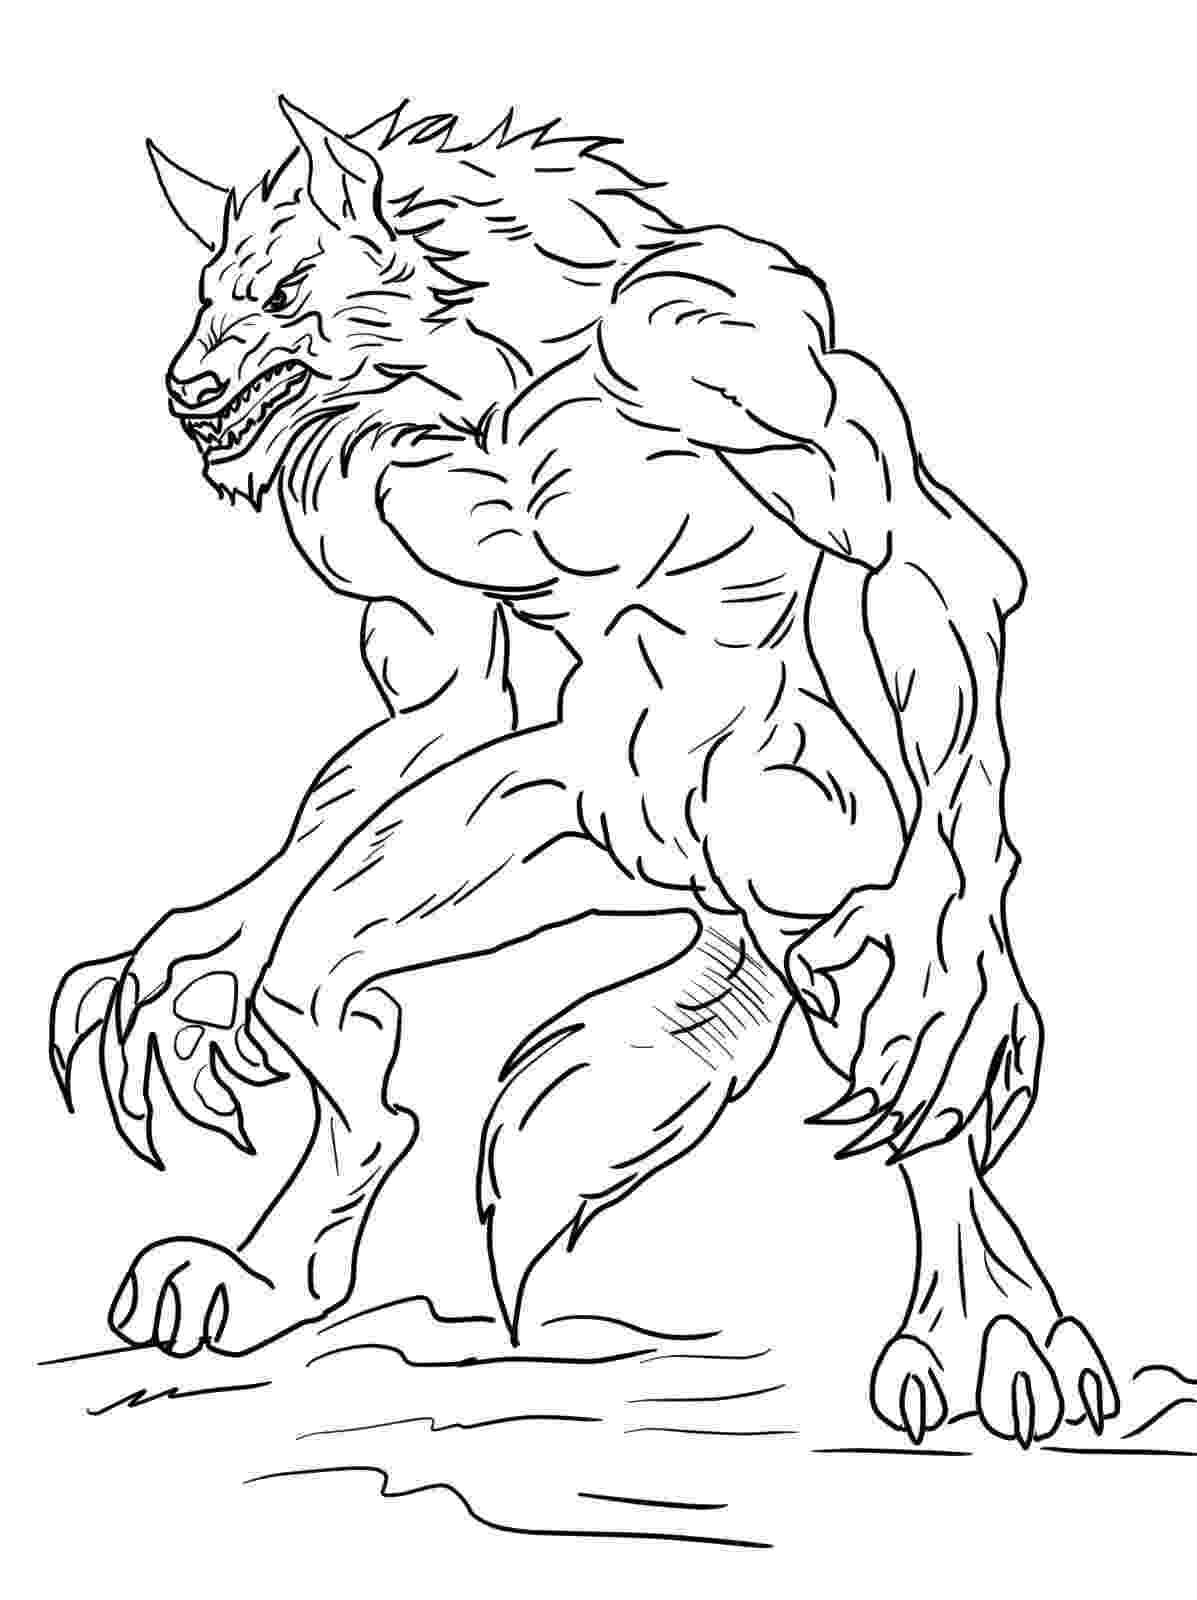 werewolf coloring pages werewolf coloring pictures coloring home pages werewolf coloring